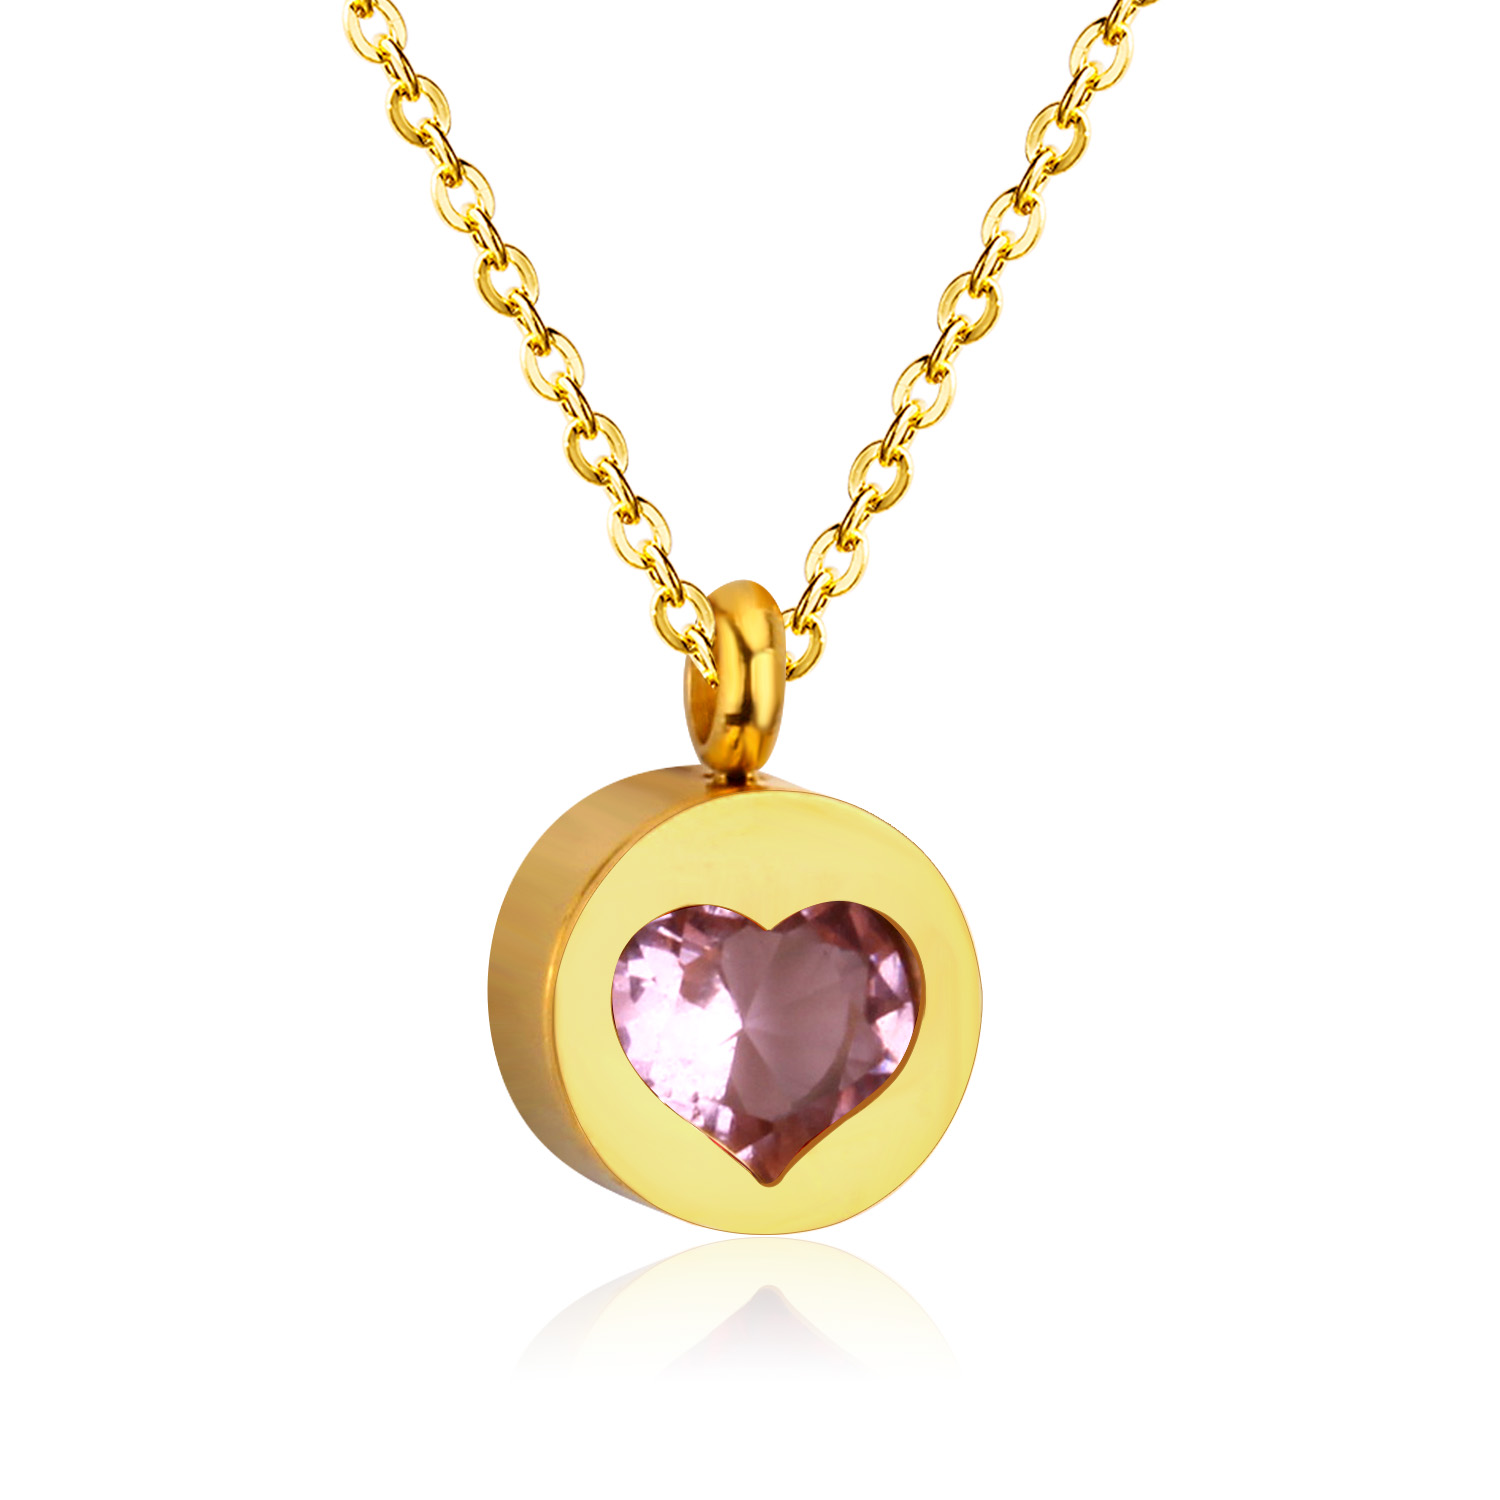 LUXUKISSKIDS Exquisite CZ Jewelry Round Heart Pendants Necklaces Stainless Steel Chain Choker Necklace For Women Collares Colar